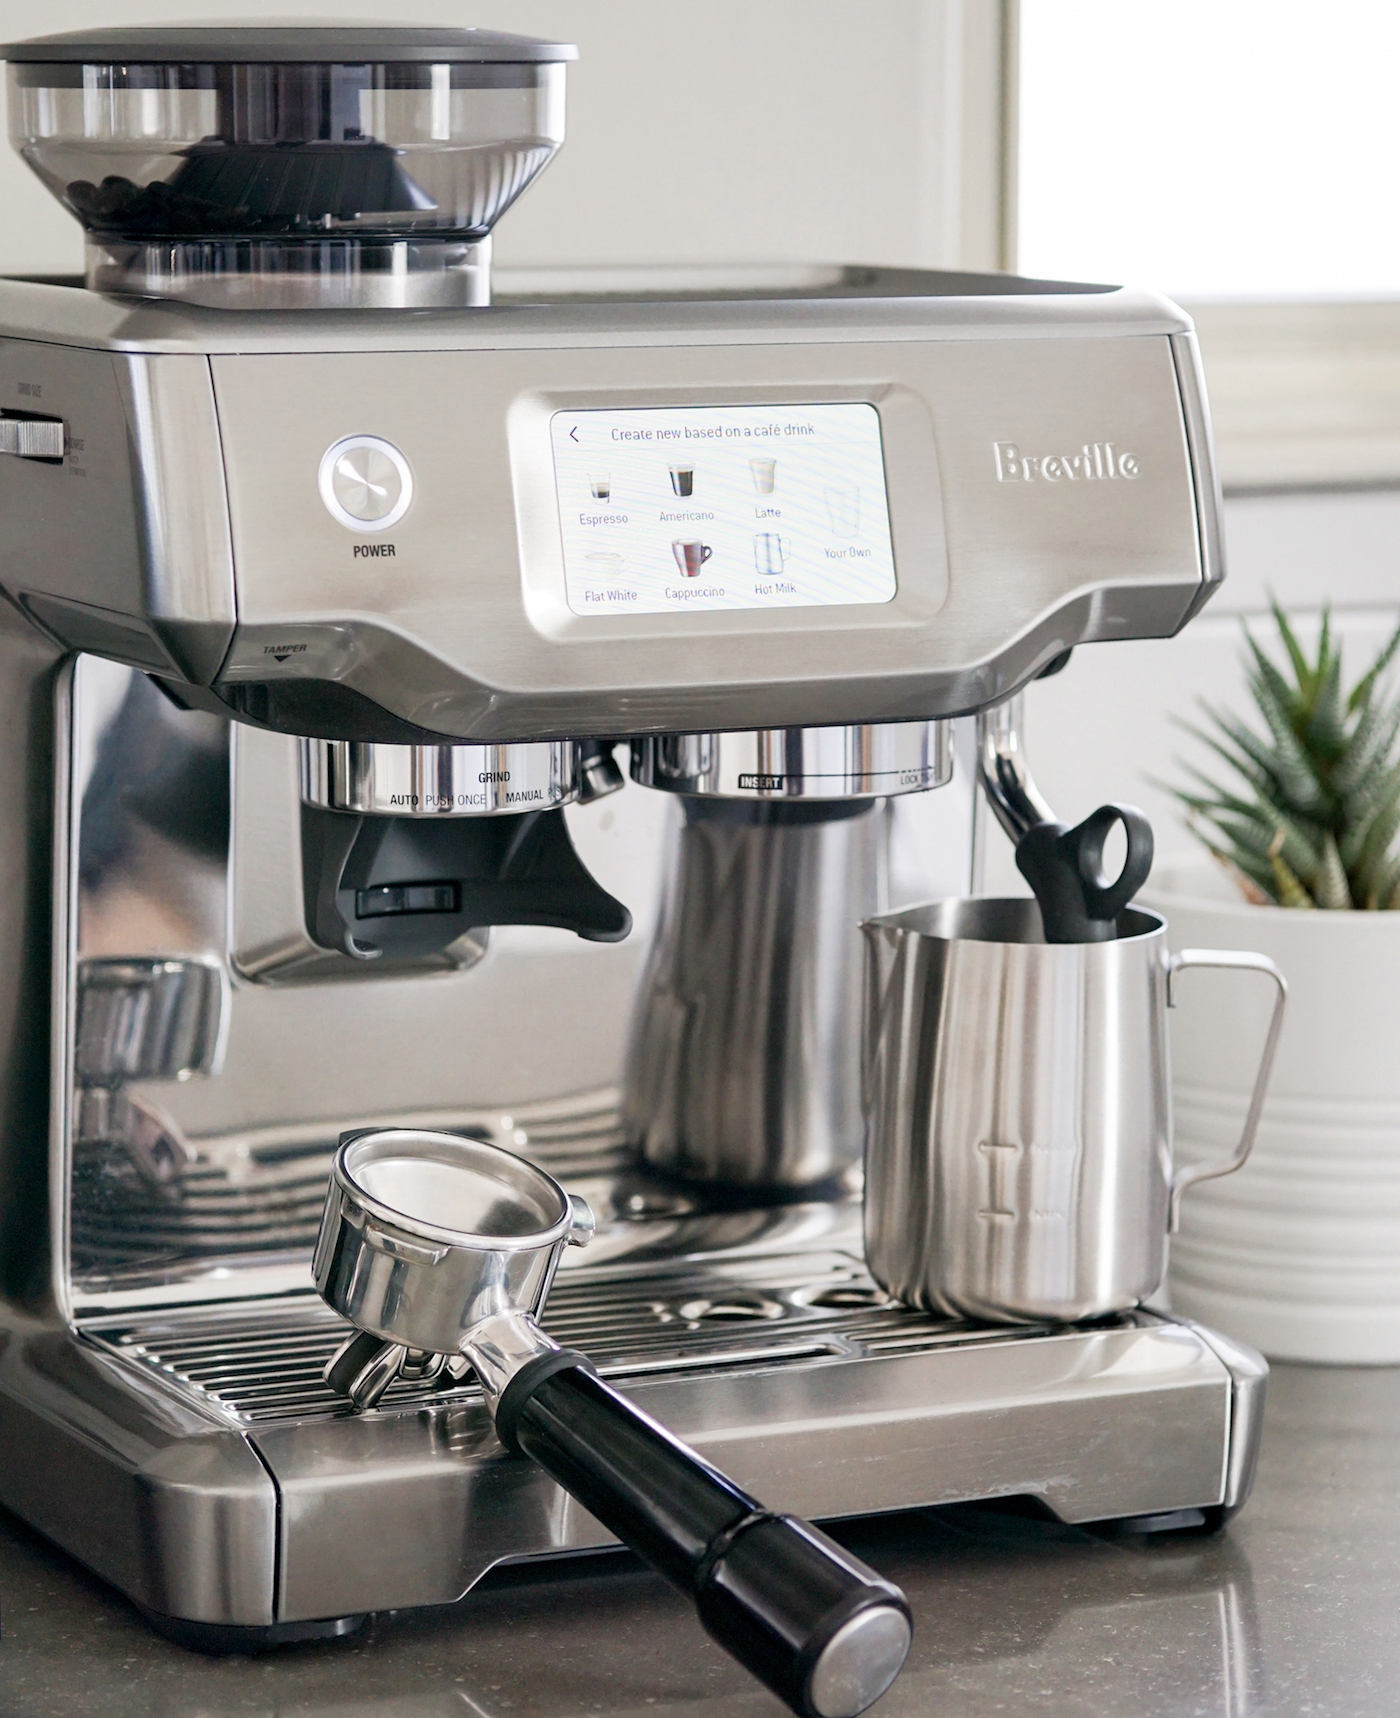 Breville Barista Touch coffee maker review